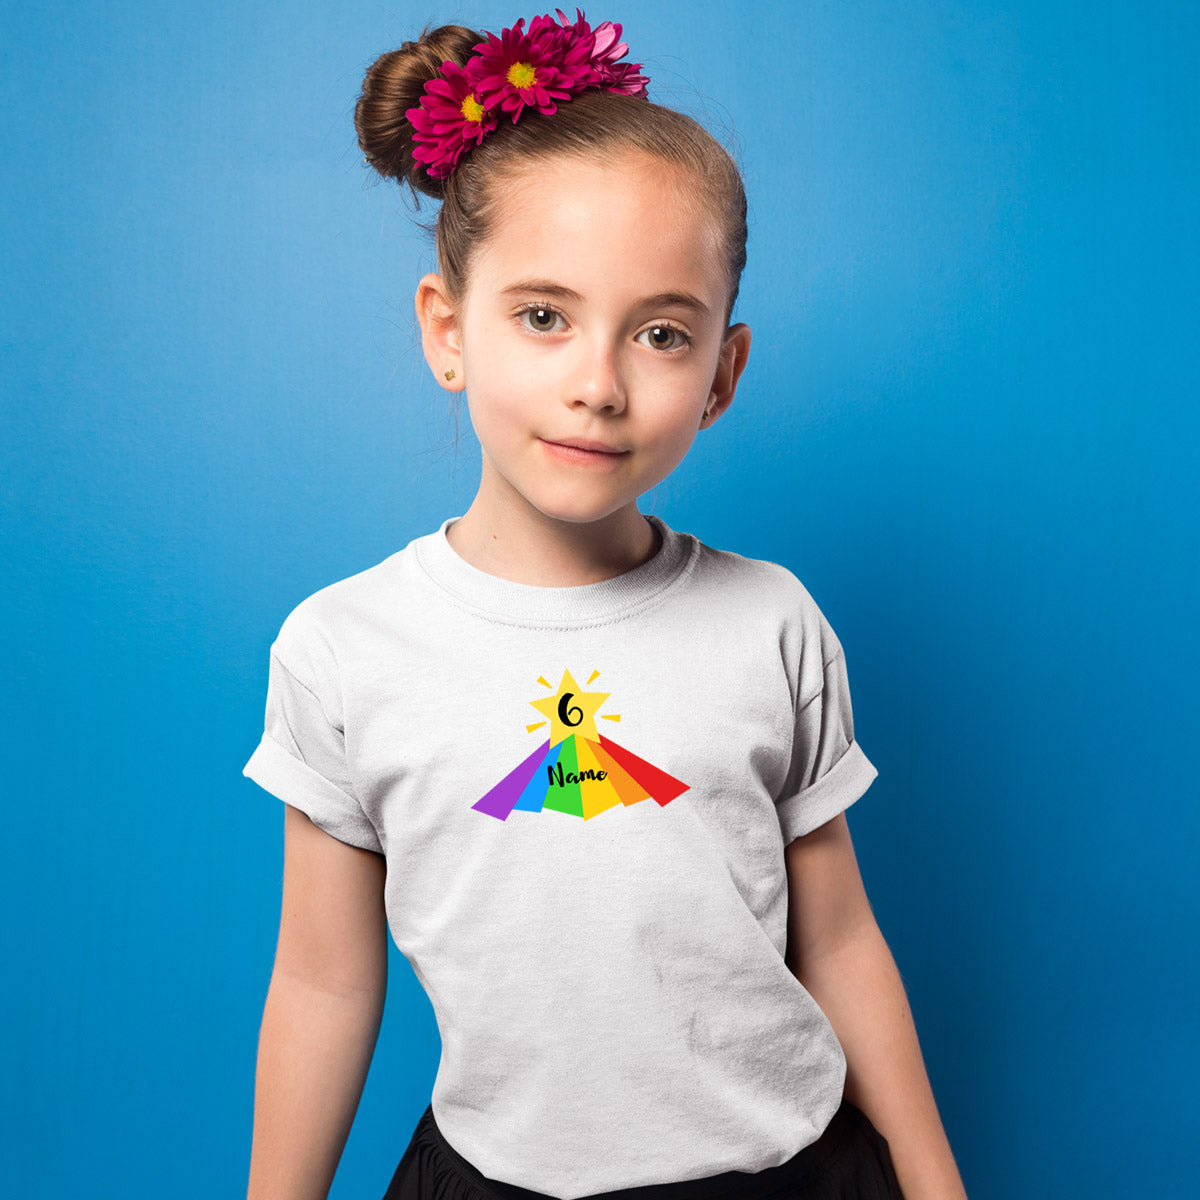 Sprinklecart Cute Rainbow 6th Birthday Kids Poly-Cotton Personalized T Shirt (White)